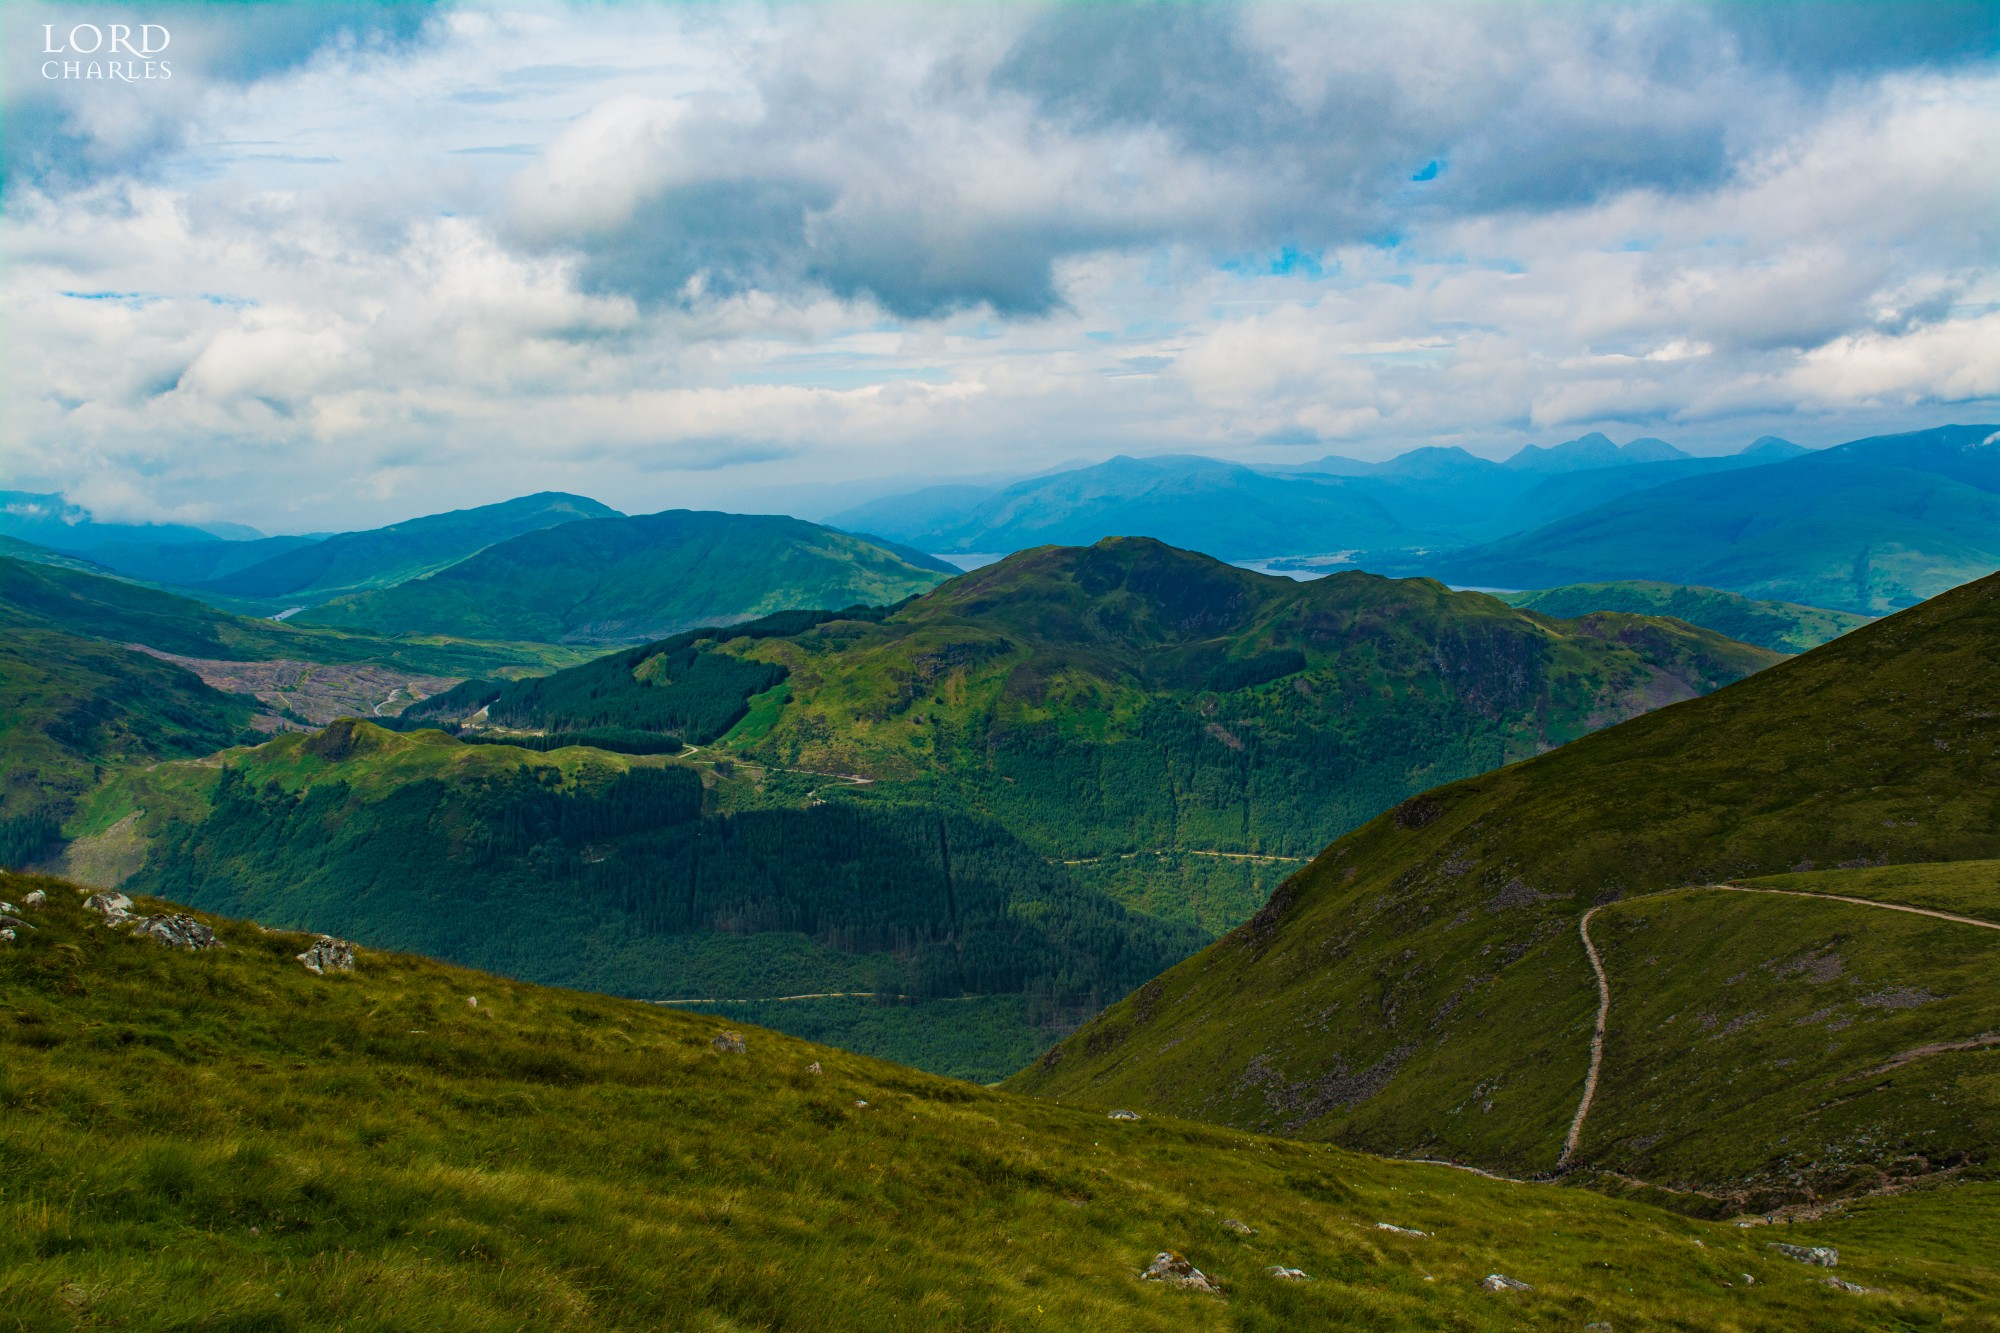 Scotland: Explore the land of Highlander by foot